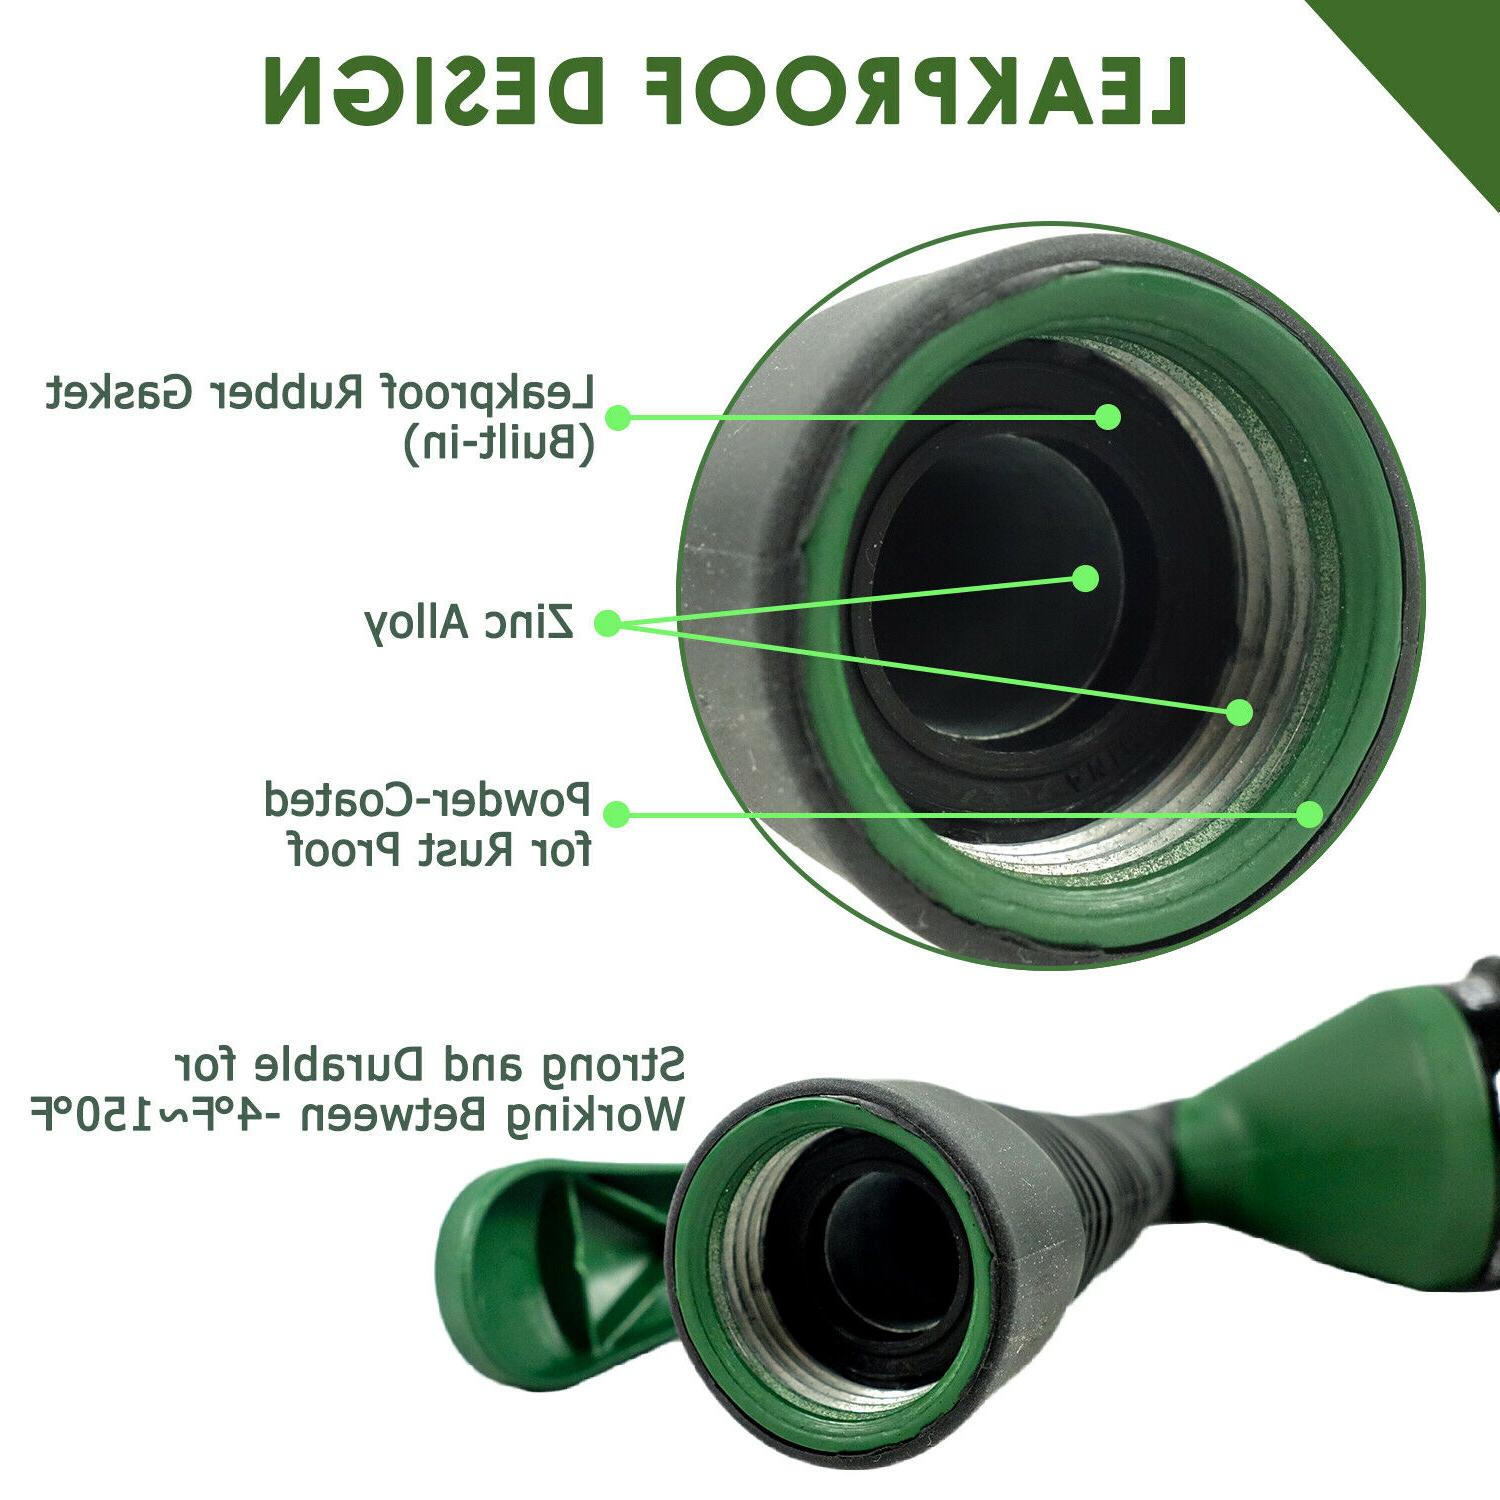 H2O WORKS Hose Nozzle with Adjustable Watering Patterns